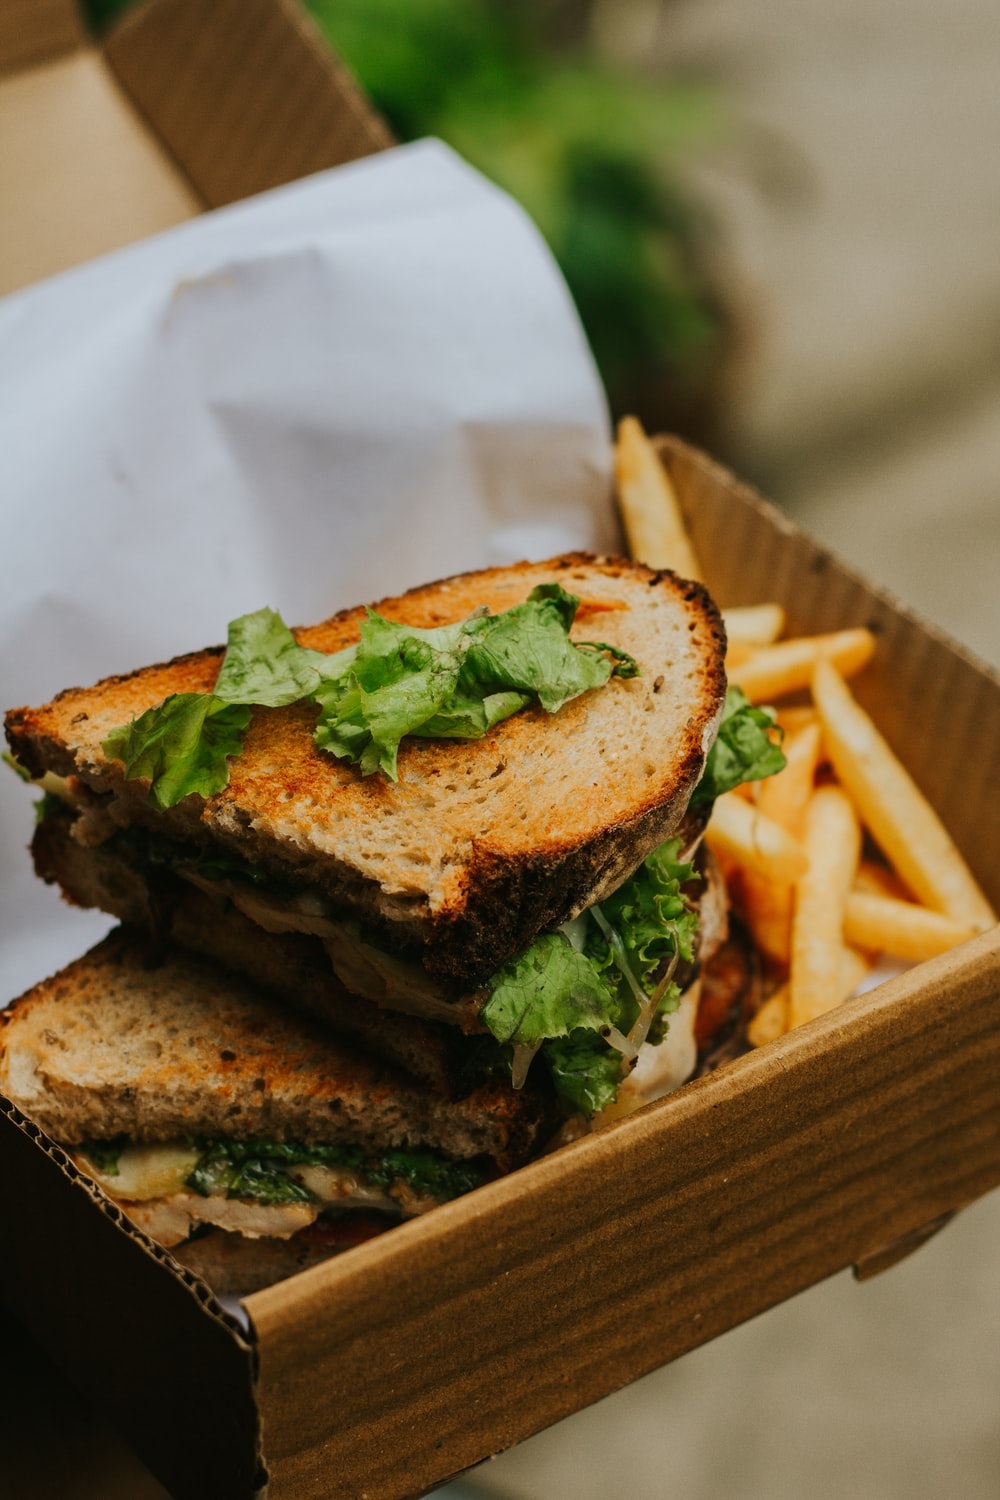 burger with lettuce and fries on brown wooden tray